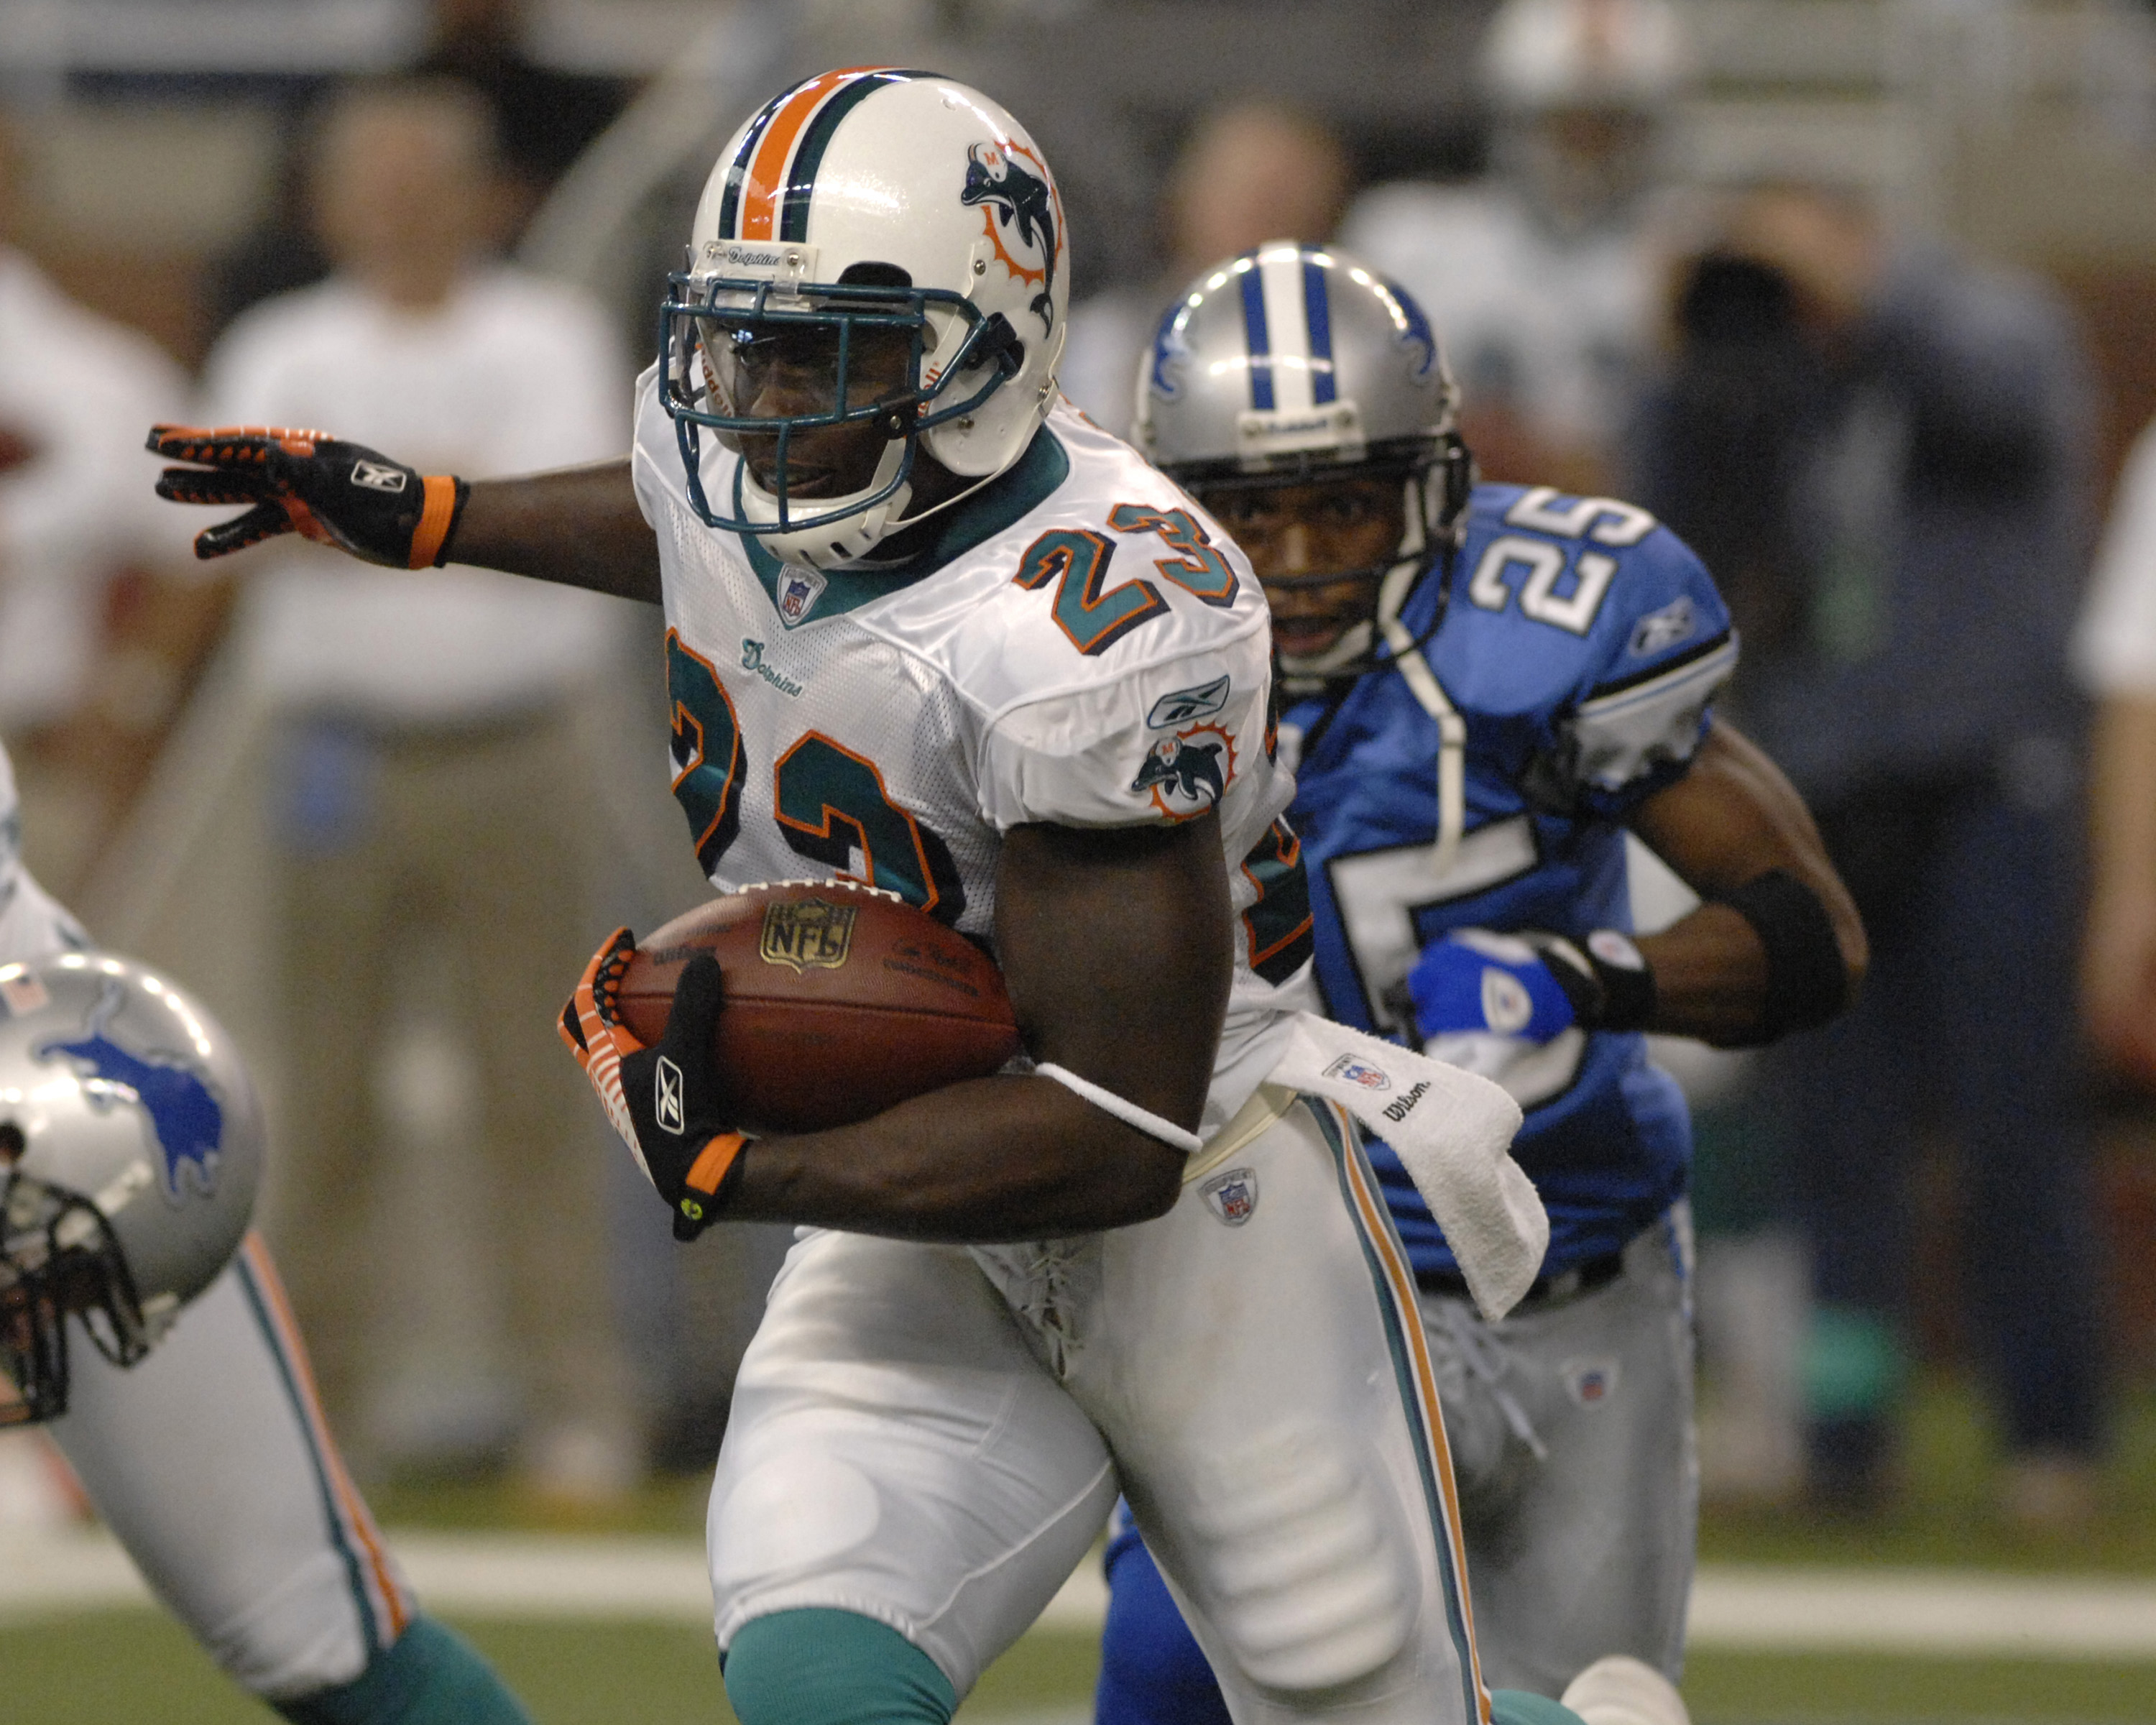 Miami Dolphins running back Ronnie Brown against the Detroit Lions in a Thanksgiving Day game Nov. 23, 2006 in Detroit. The Dolphins won 21 - 10.  (Photo by Al Messerschmidt/Getty Images)